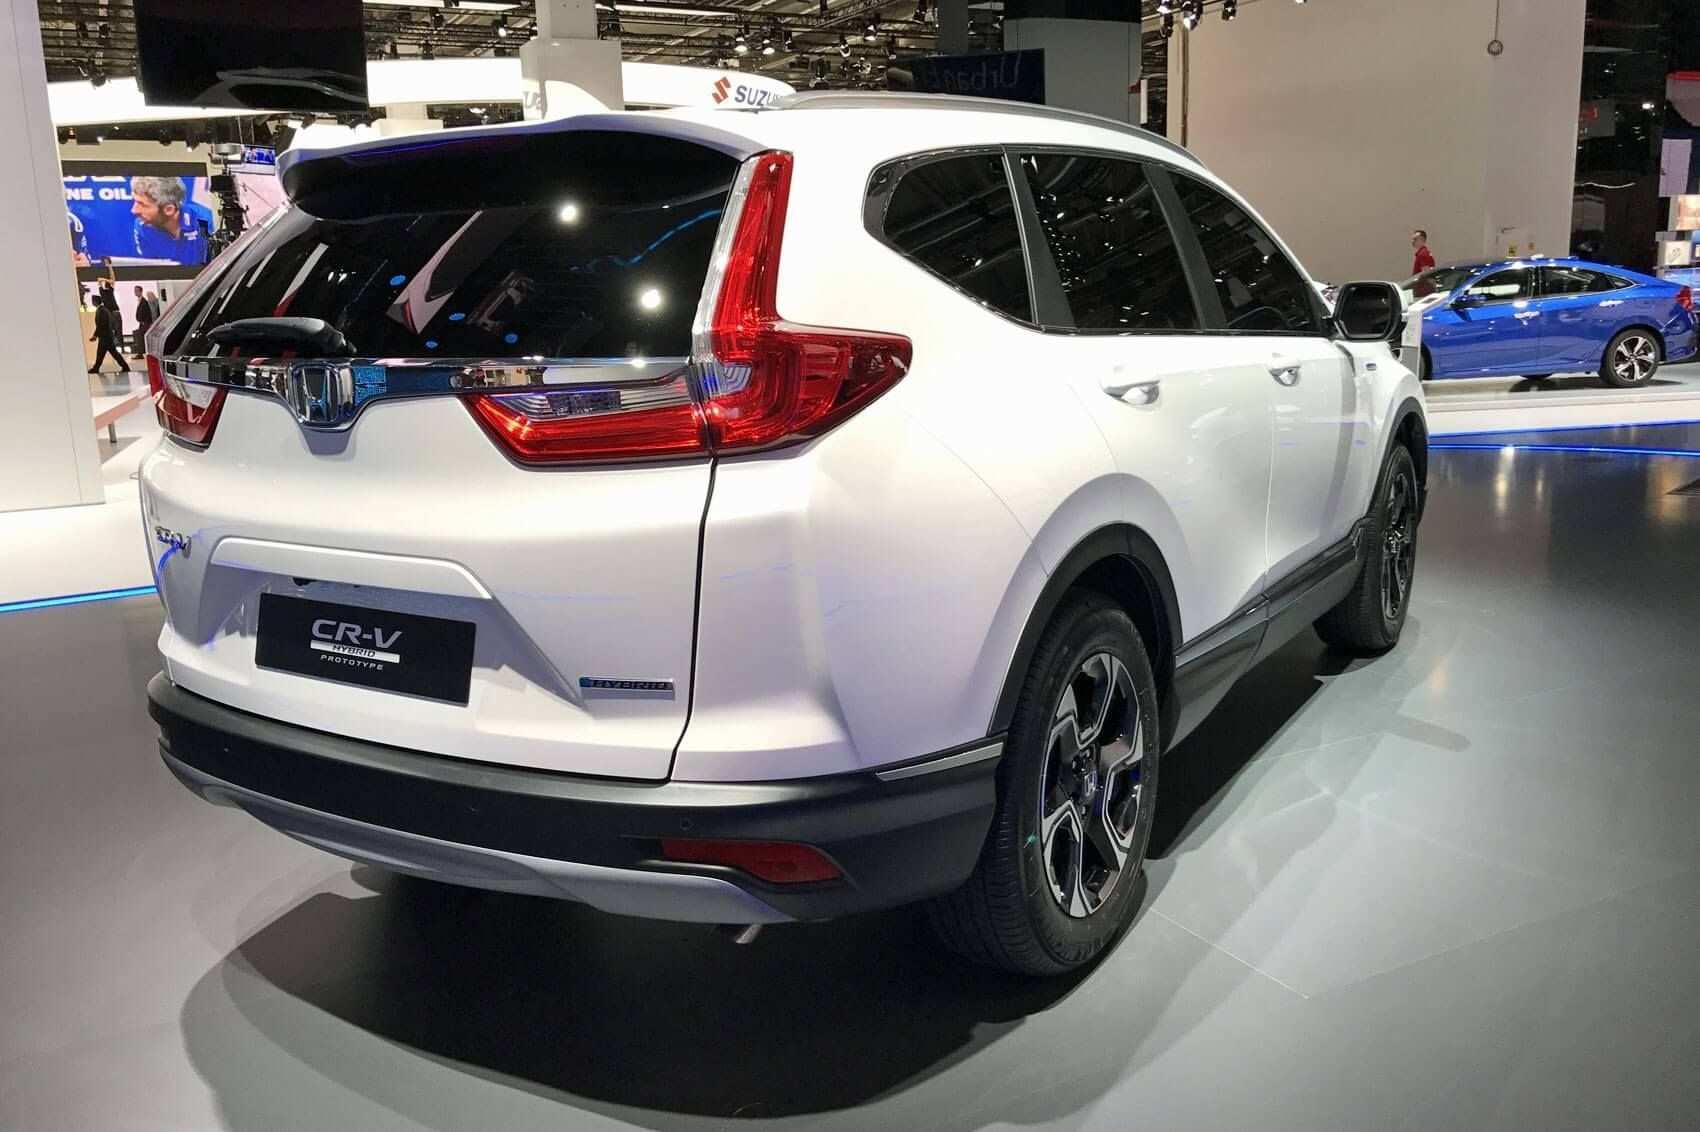 65 Best Review Best Honda Crv 2019 Price In Qatar Review And Price Ratings with Best Honda Crv 2019 Price In Qatar Review And Price